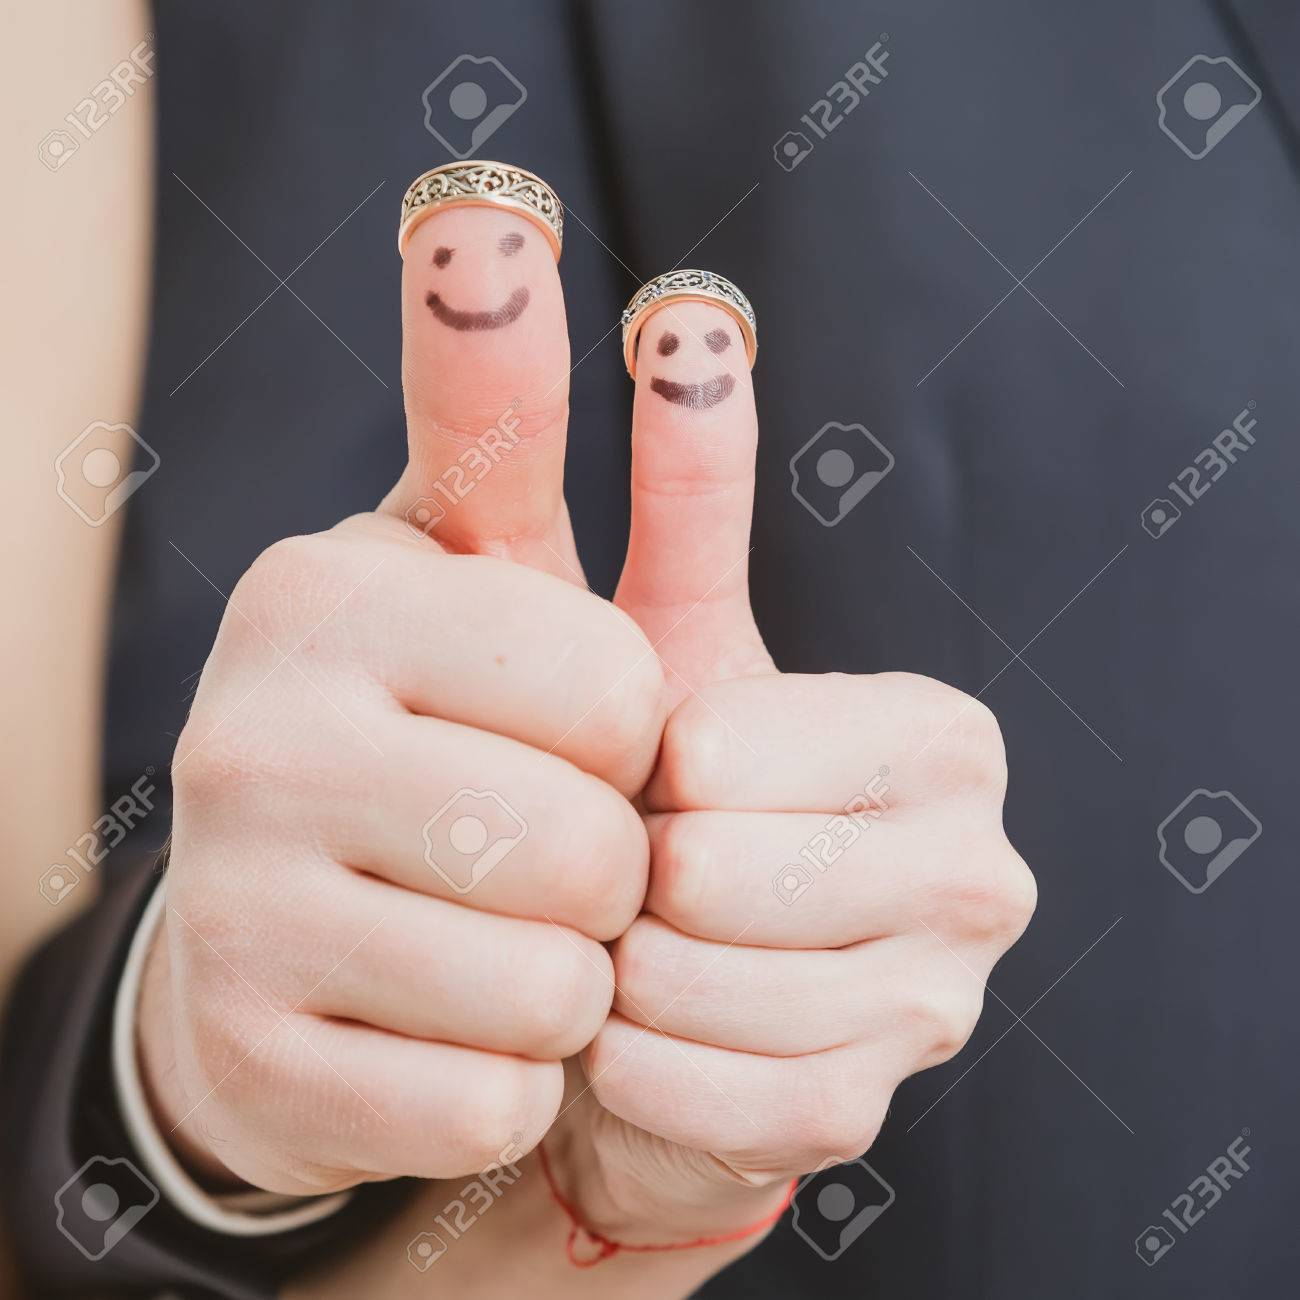 Stock Photo  Wedding Rings On Their Fingers Painted With The Bride And  Groom, Funny Little People Conceptual Idea